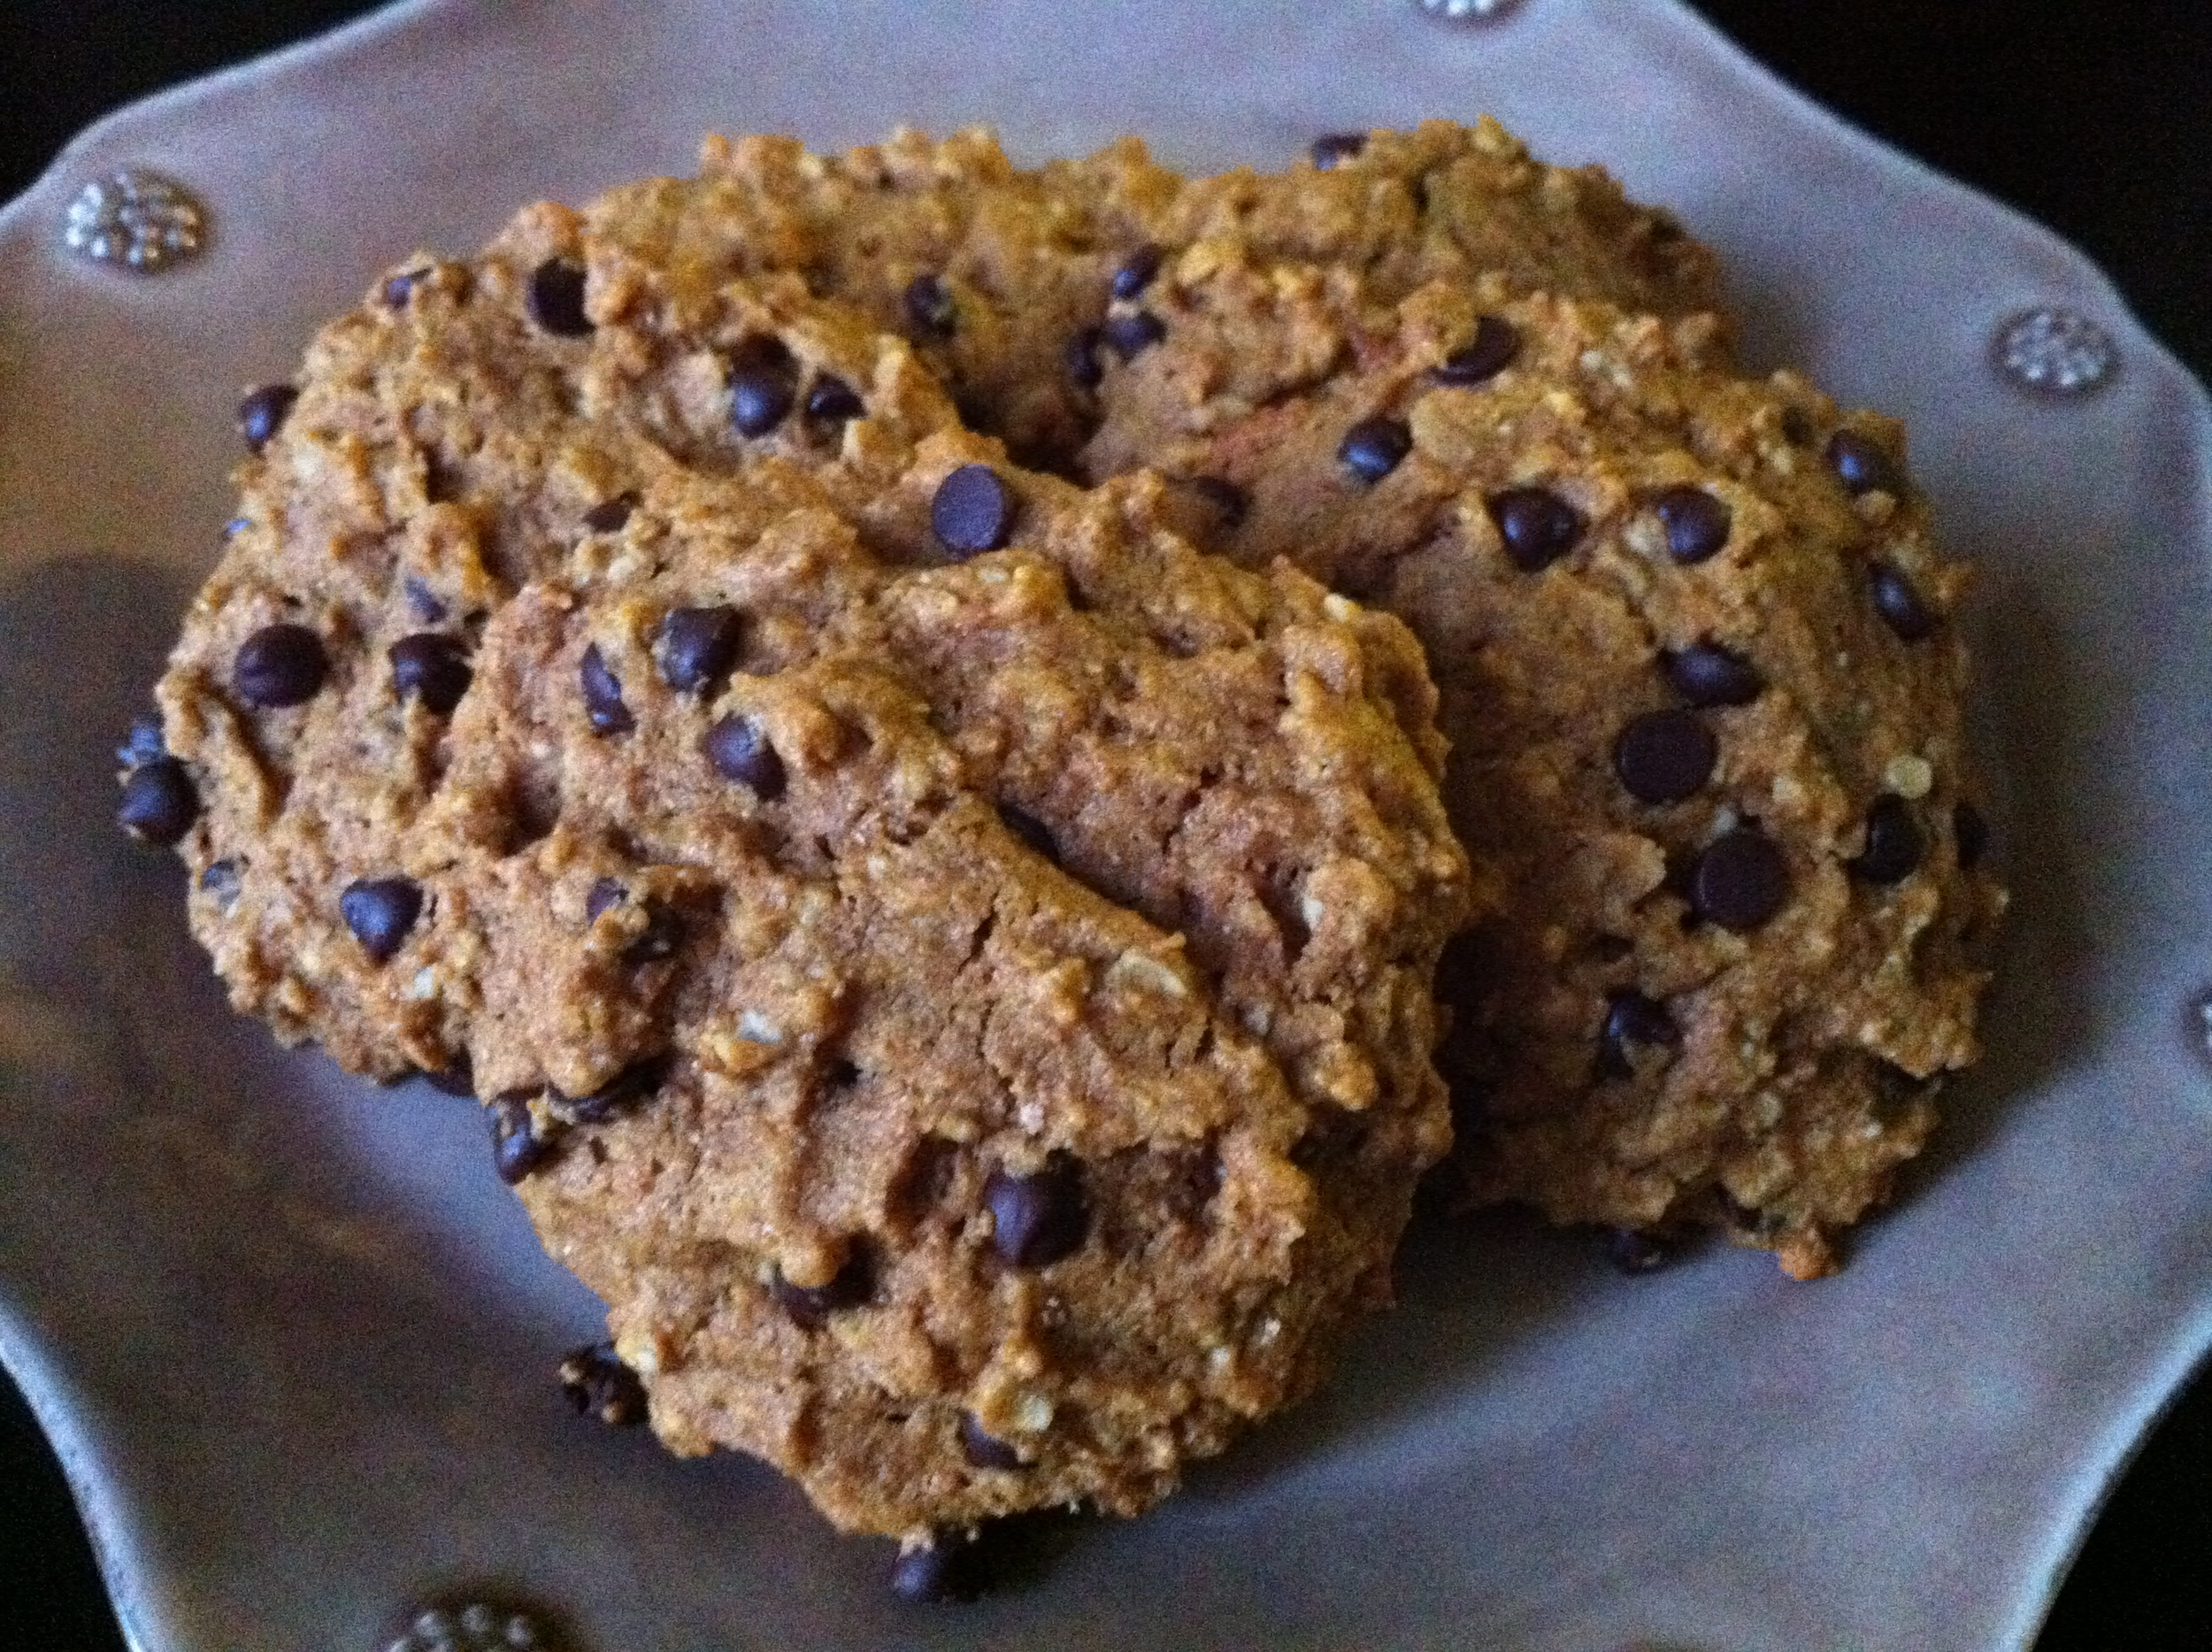 These vegan pumpkin oat chocolate chip cookies were delicious and totally nutritious.